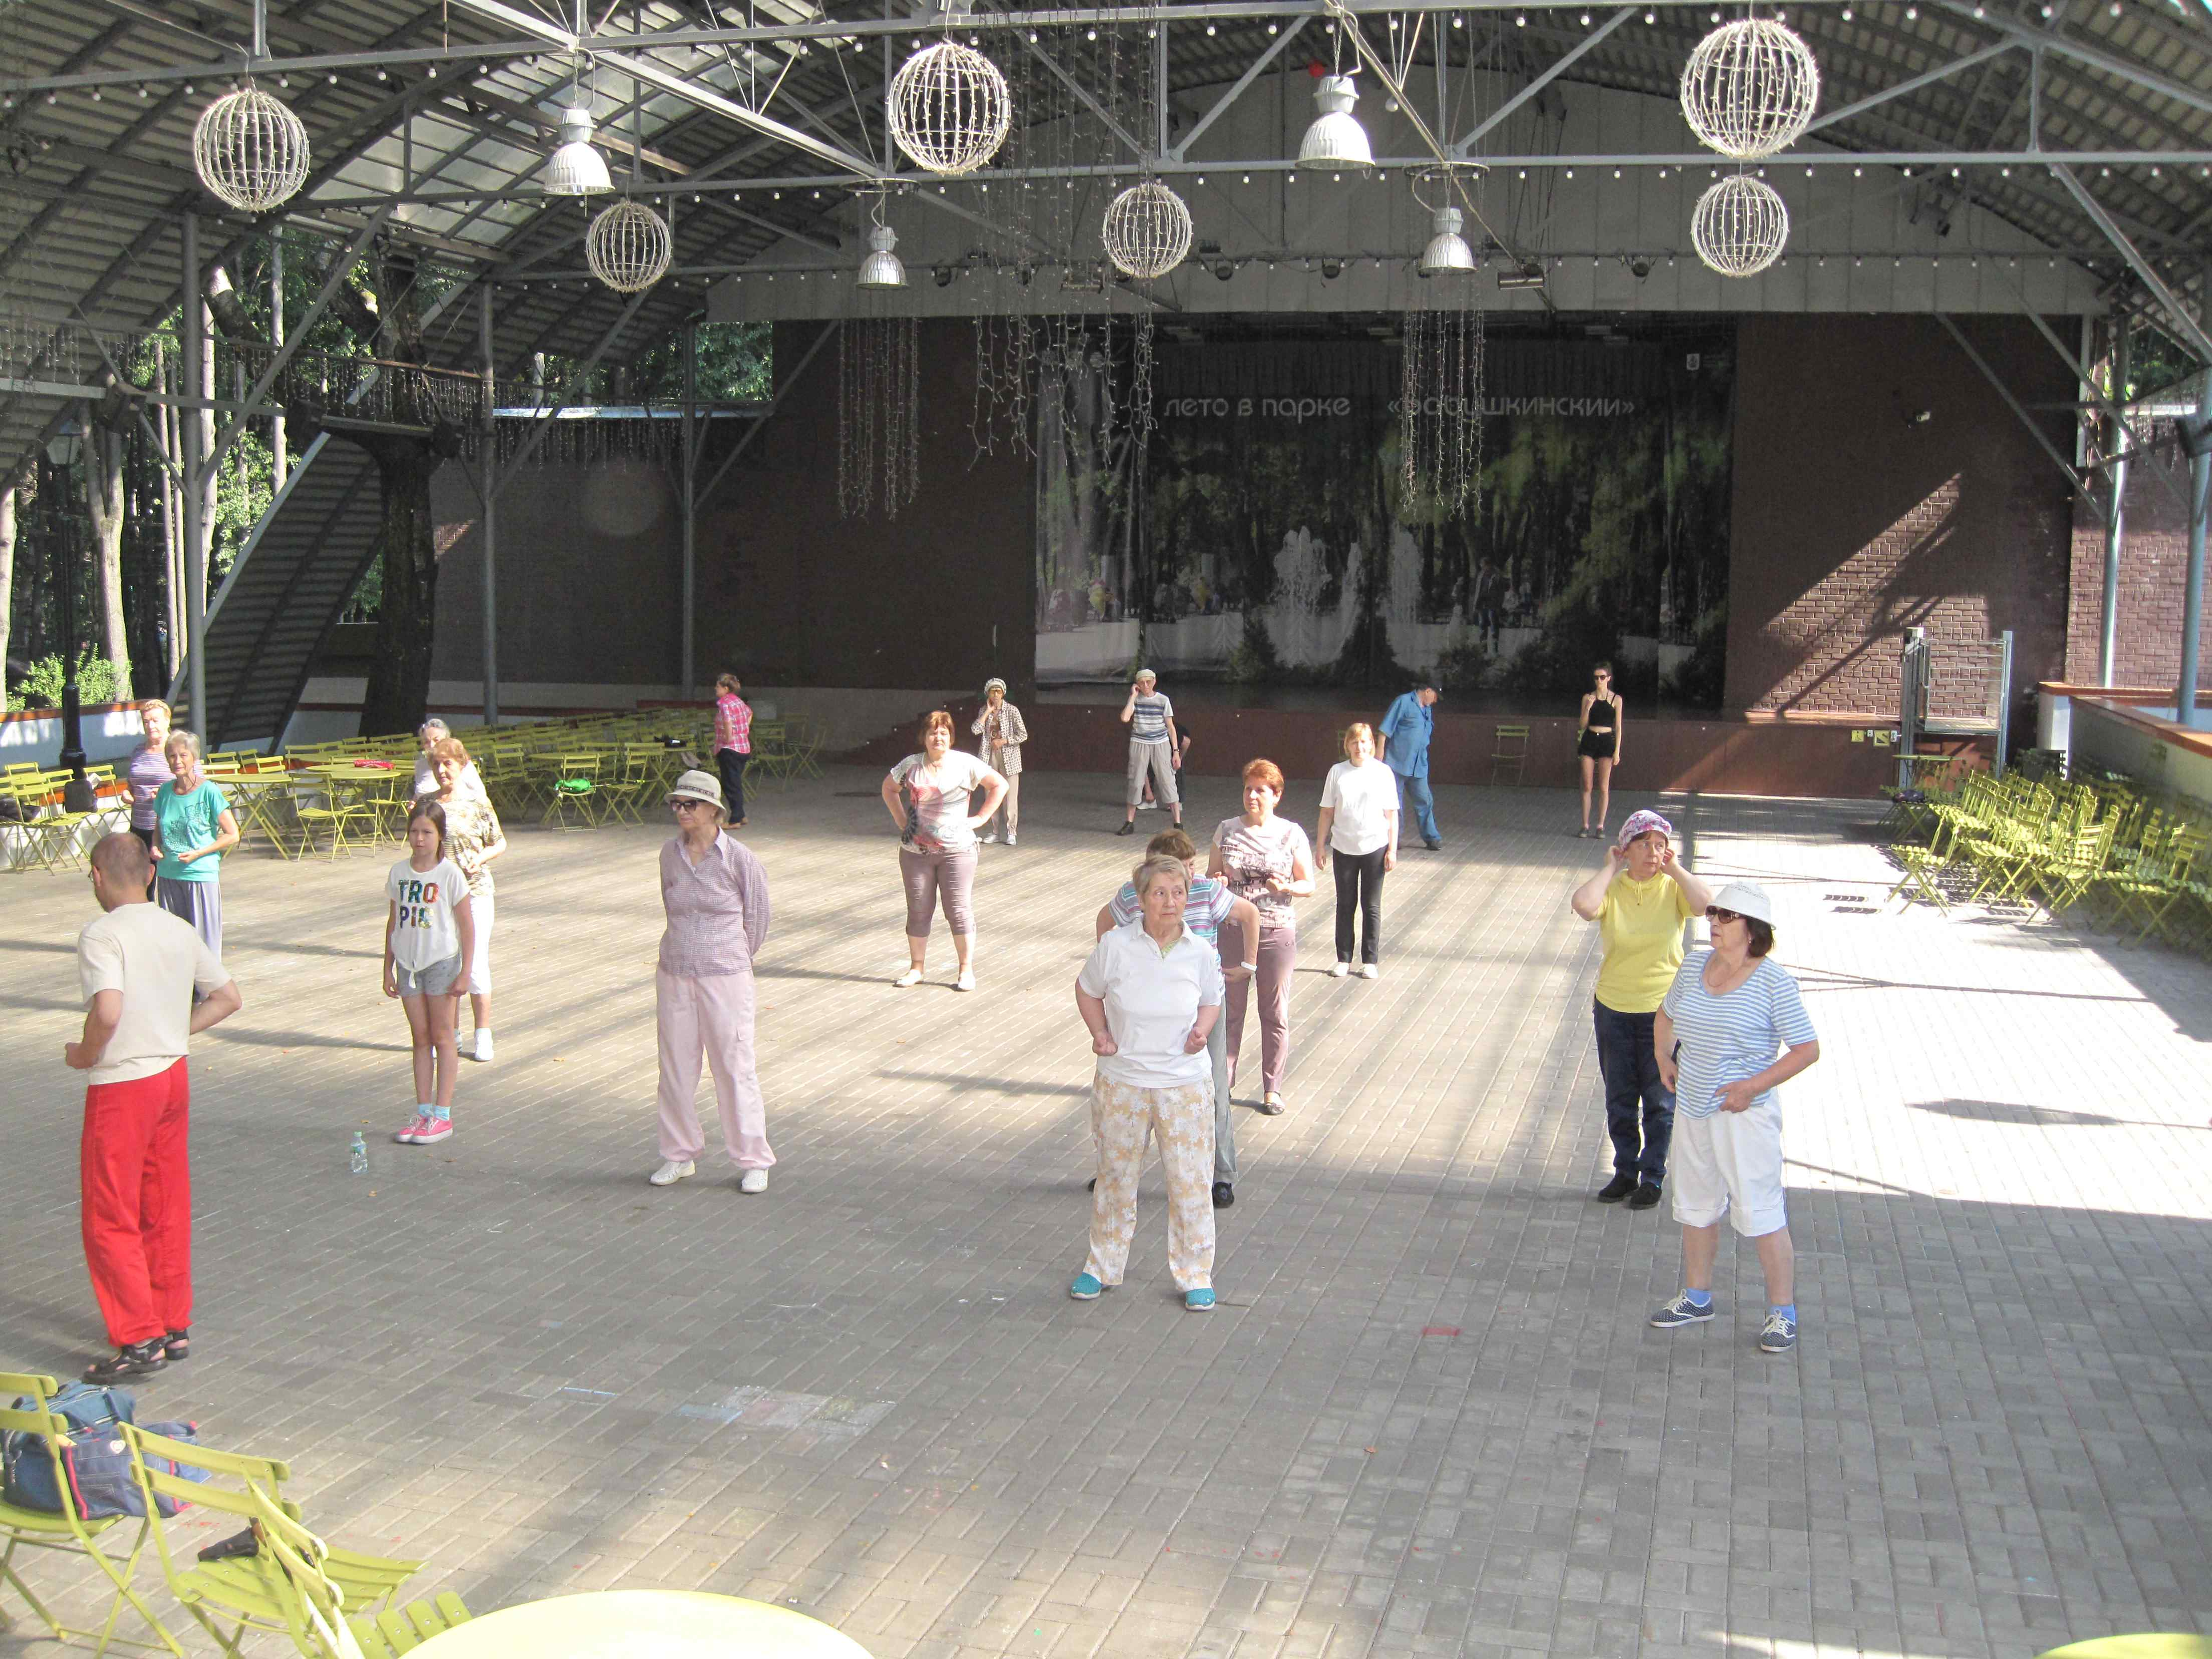 Babushkinsky Park of Culture and Rest in Moscow: photos, description, activities, leisure options, visitor reviews 18